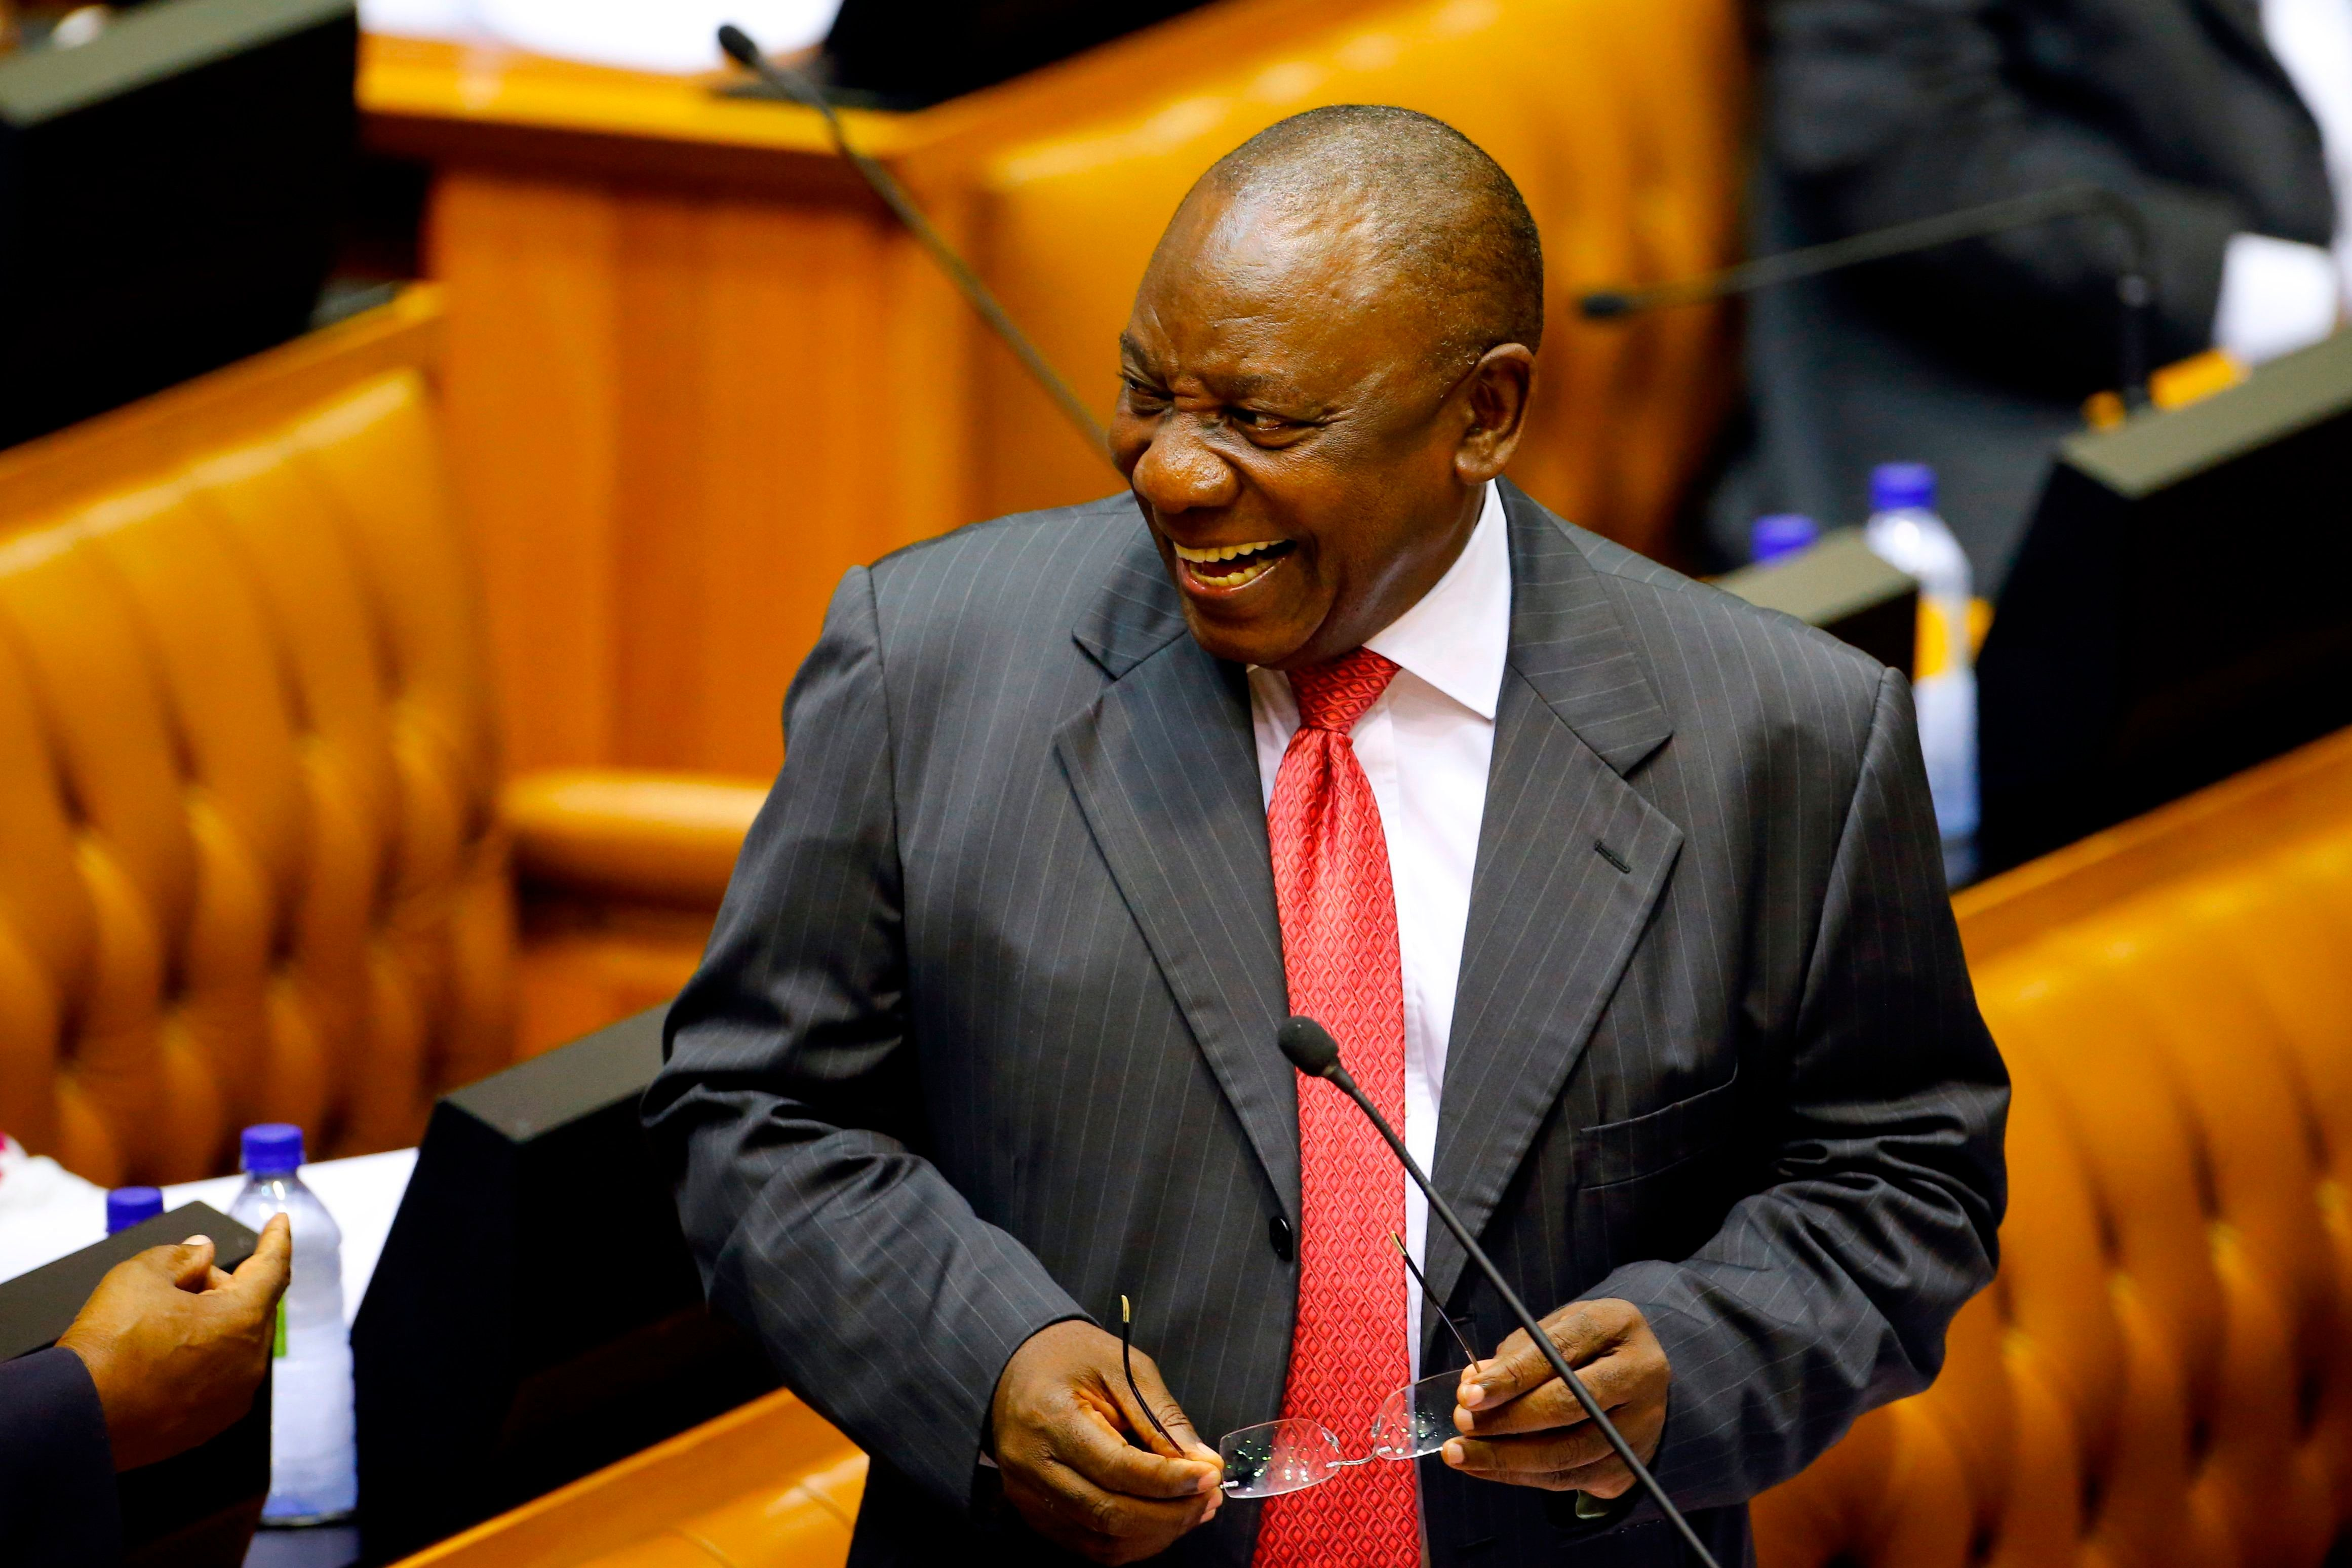 Acting President of South Africa Cyril Ramaphosa reacts as he arrives at Parliament in Cape Town, on February 15, 2018 for a session to officially deal with former President Zuma's resignation and his possible election and swearing. South Africa prepared to welcome wealthy former businessman Cyril Ramaphosa as its new president on February 15, 2018 after scandal-tainted Jacob Zuma resigned under intense pressure from his own party. / AFP PHOTO / POOL / MIKE HUTCHINGS        (Photo credit should read MIKE HUTCHINGS/AFP/Getty Images)